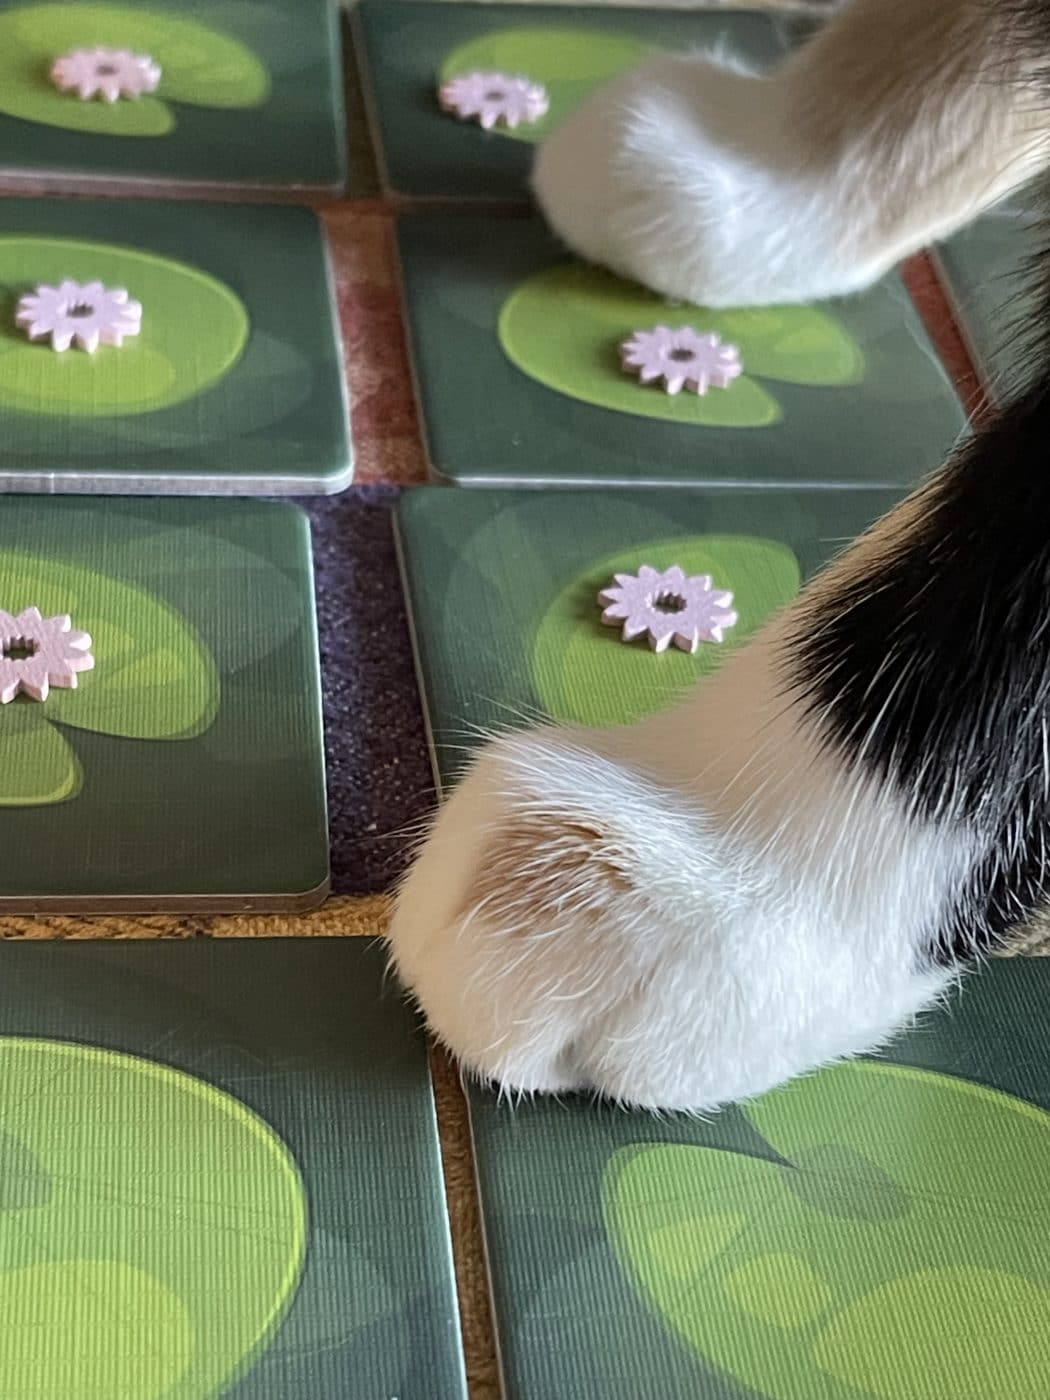 Lily cat stepping on the game tiles